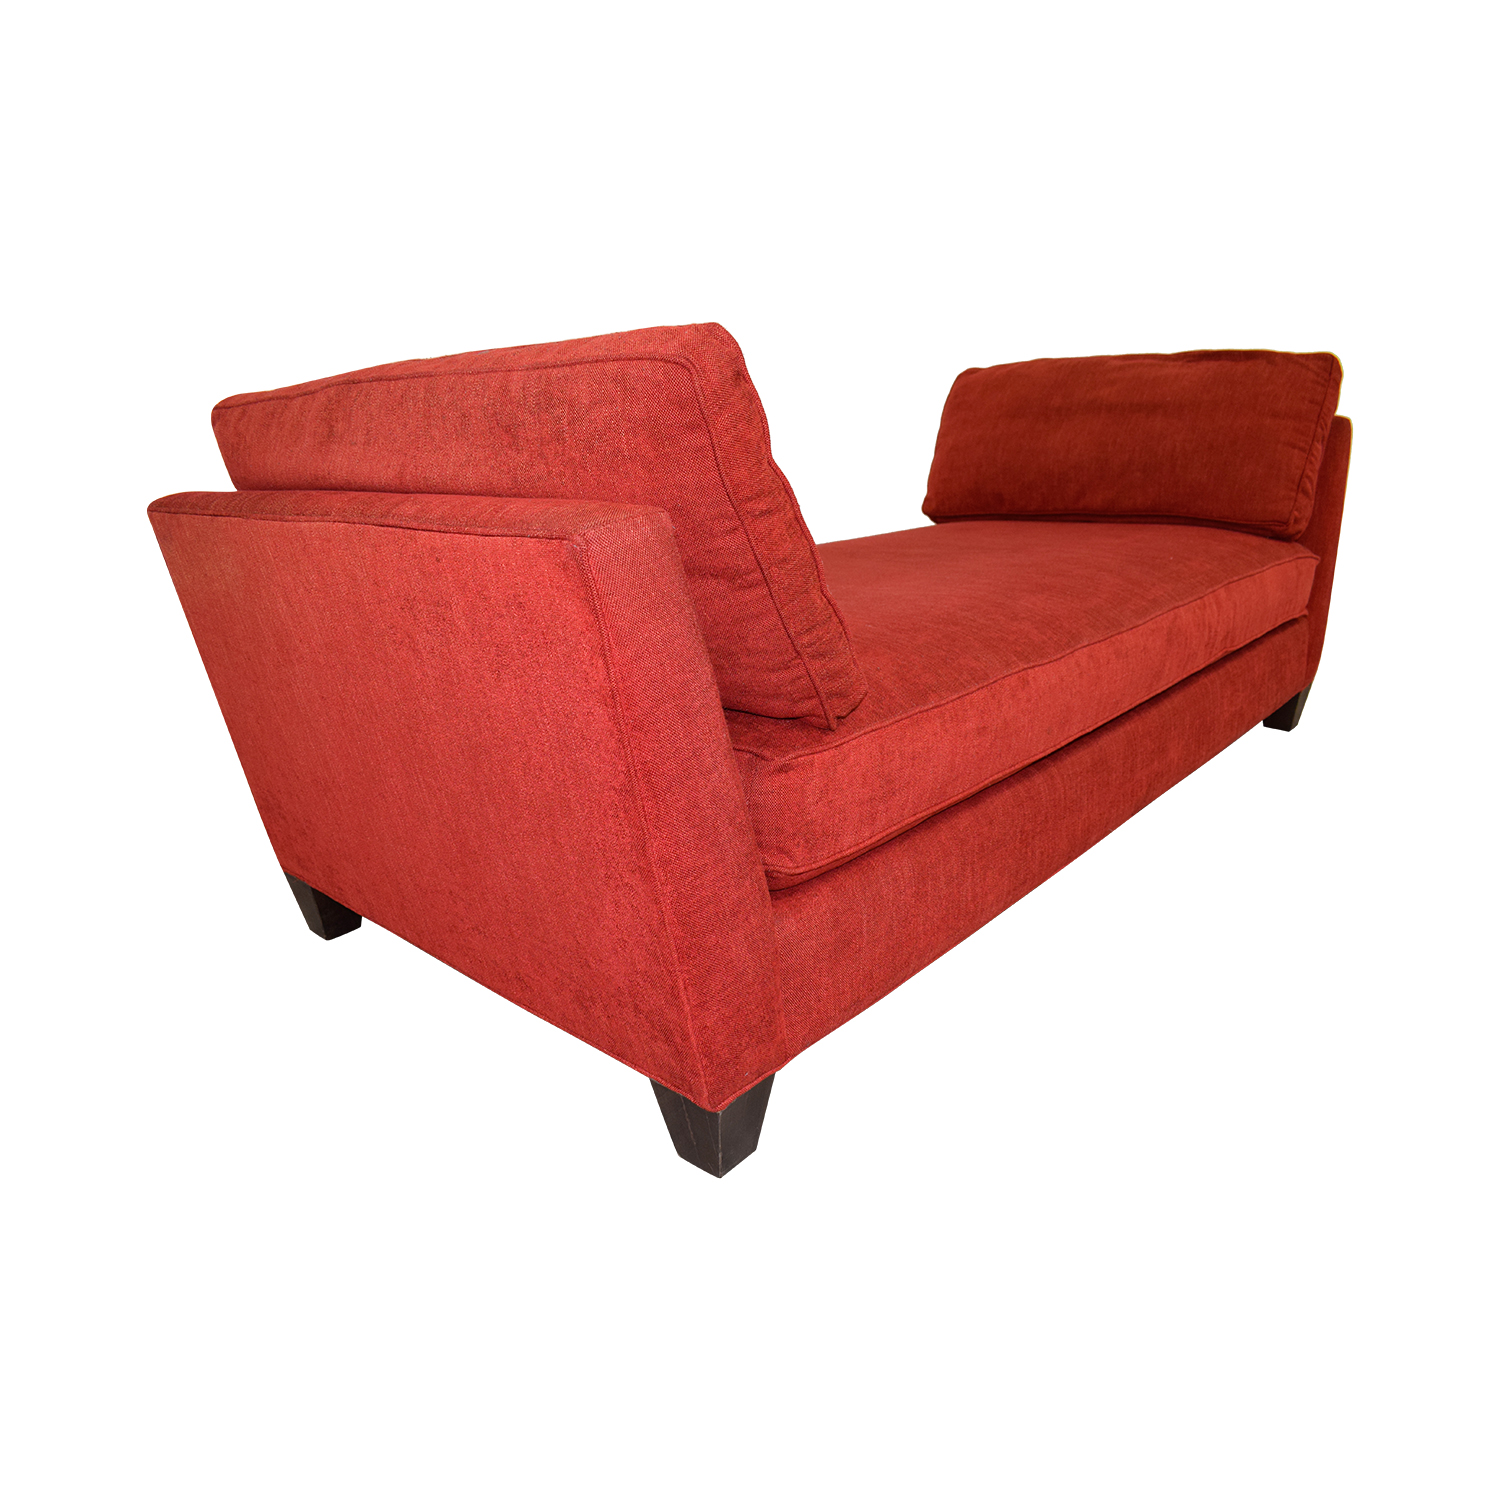 89% OFF - Crate & Barrel Crate & Barrel Marlowe Red Chaise / Sofas